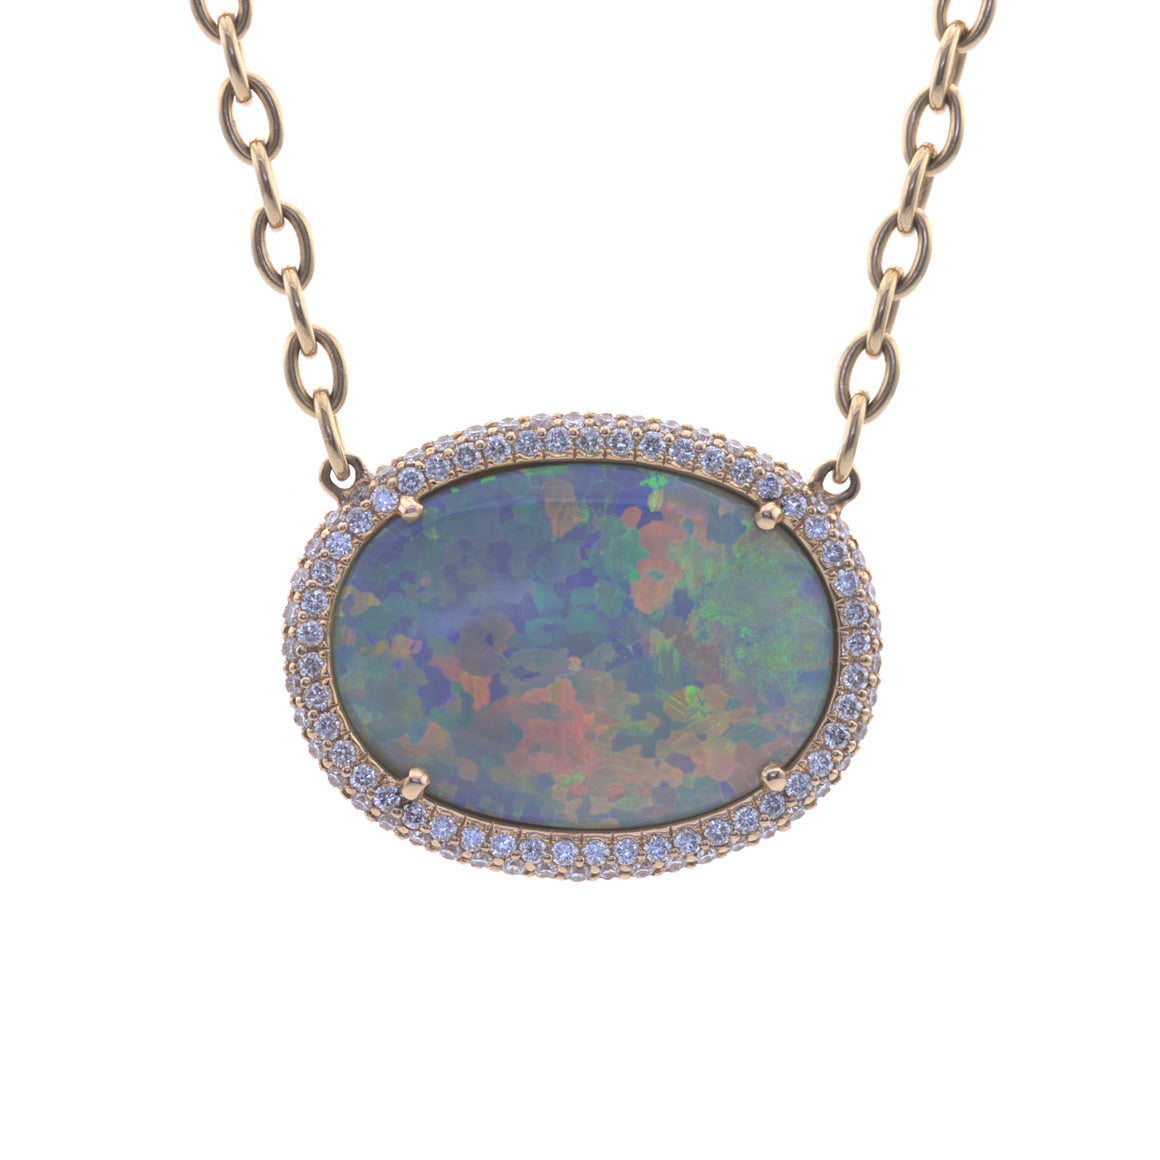 Celestial Opal Necklace